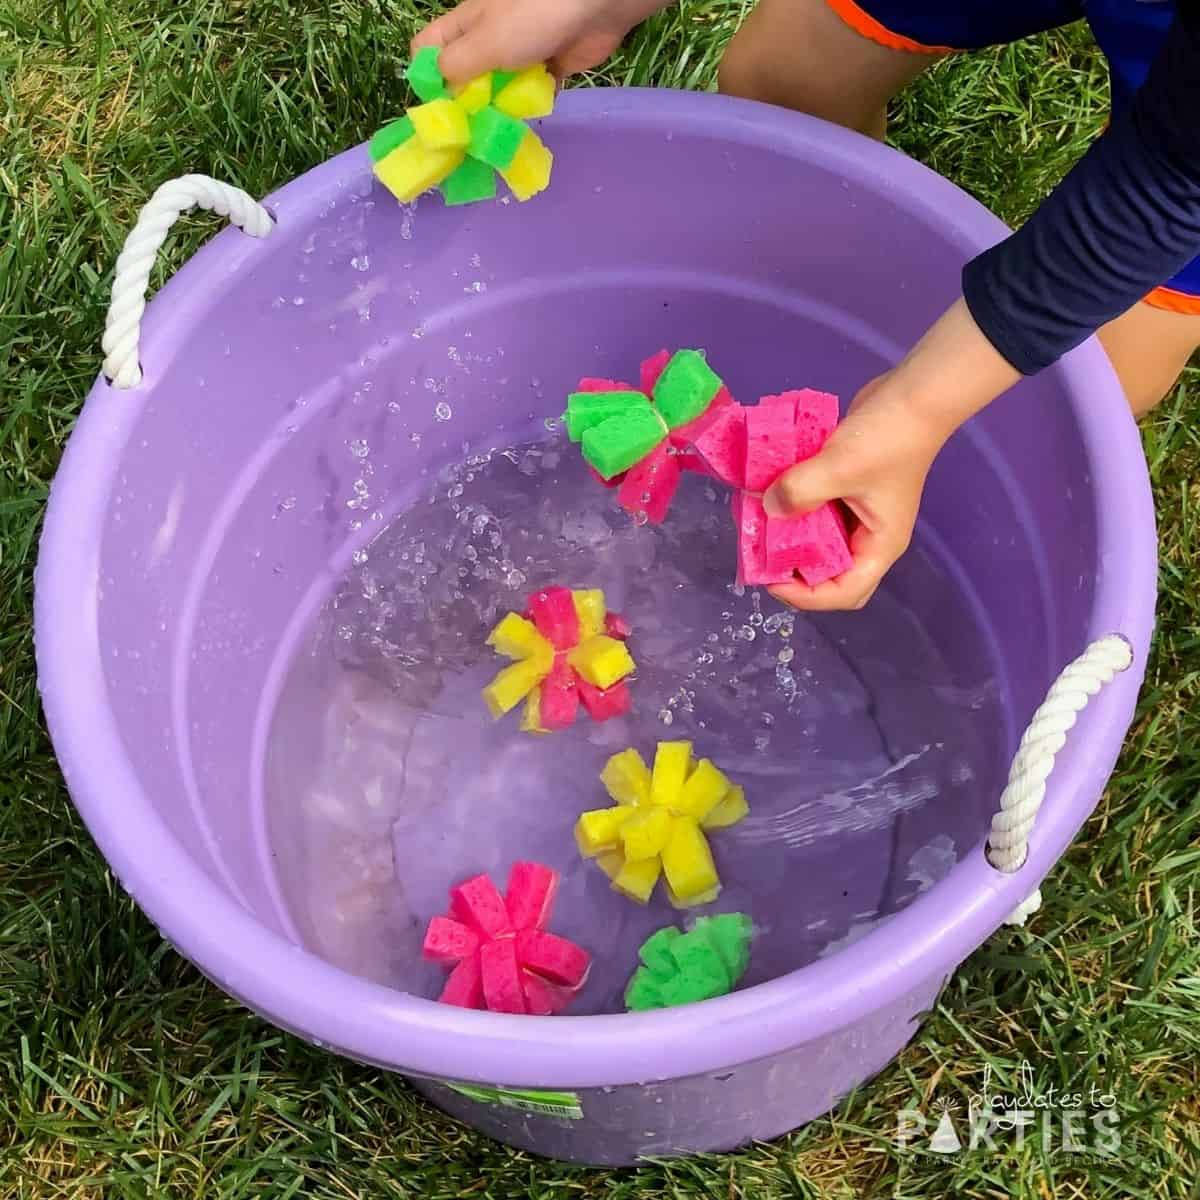 toddler boy grabbing sponge balls out of a large bucket filled with water